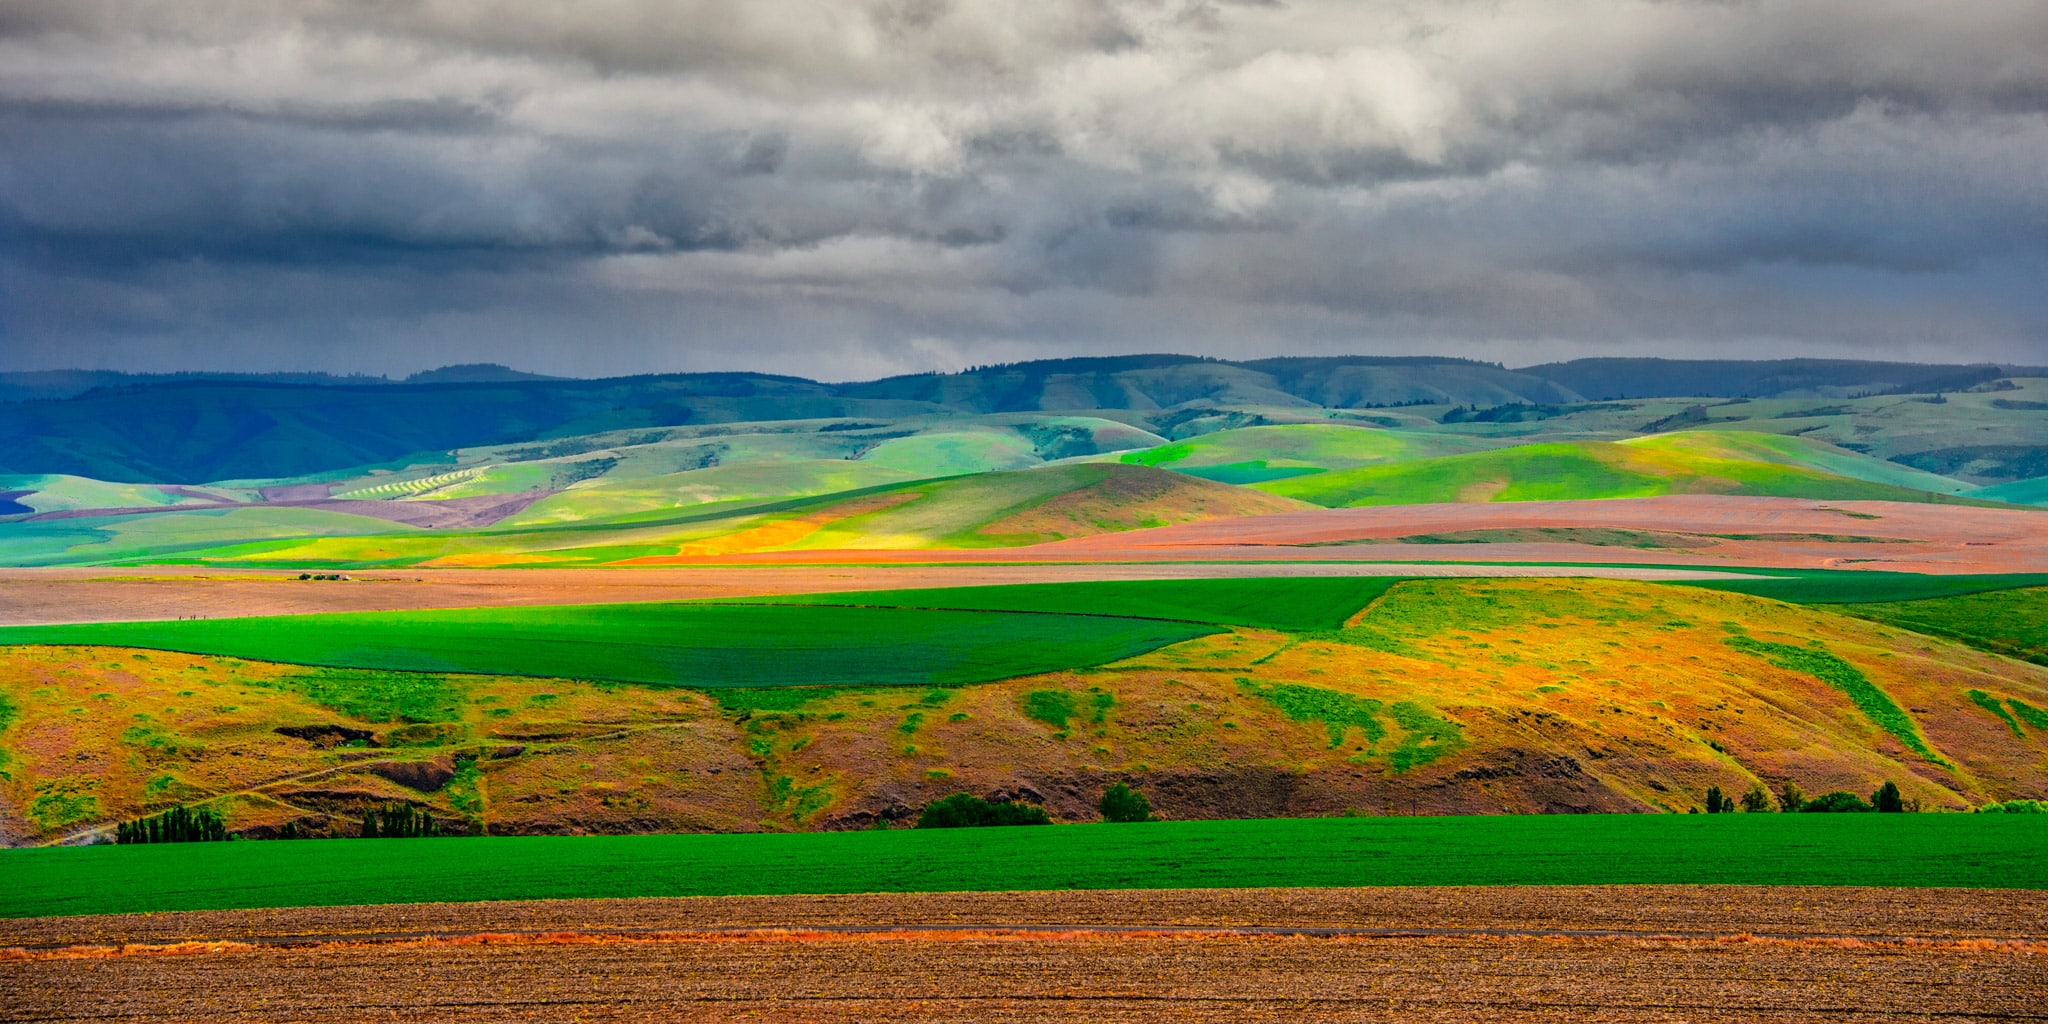 This view of the rolling Palouse hills was taken from the access road to Steptoe Butte in Steptoe Butte State Park near Colfax, Washington.